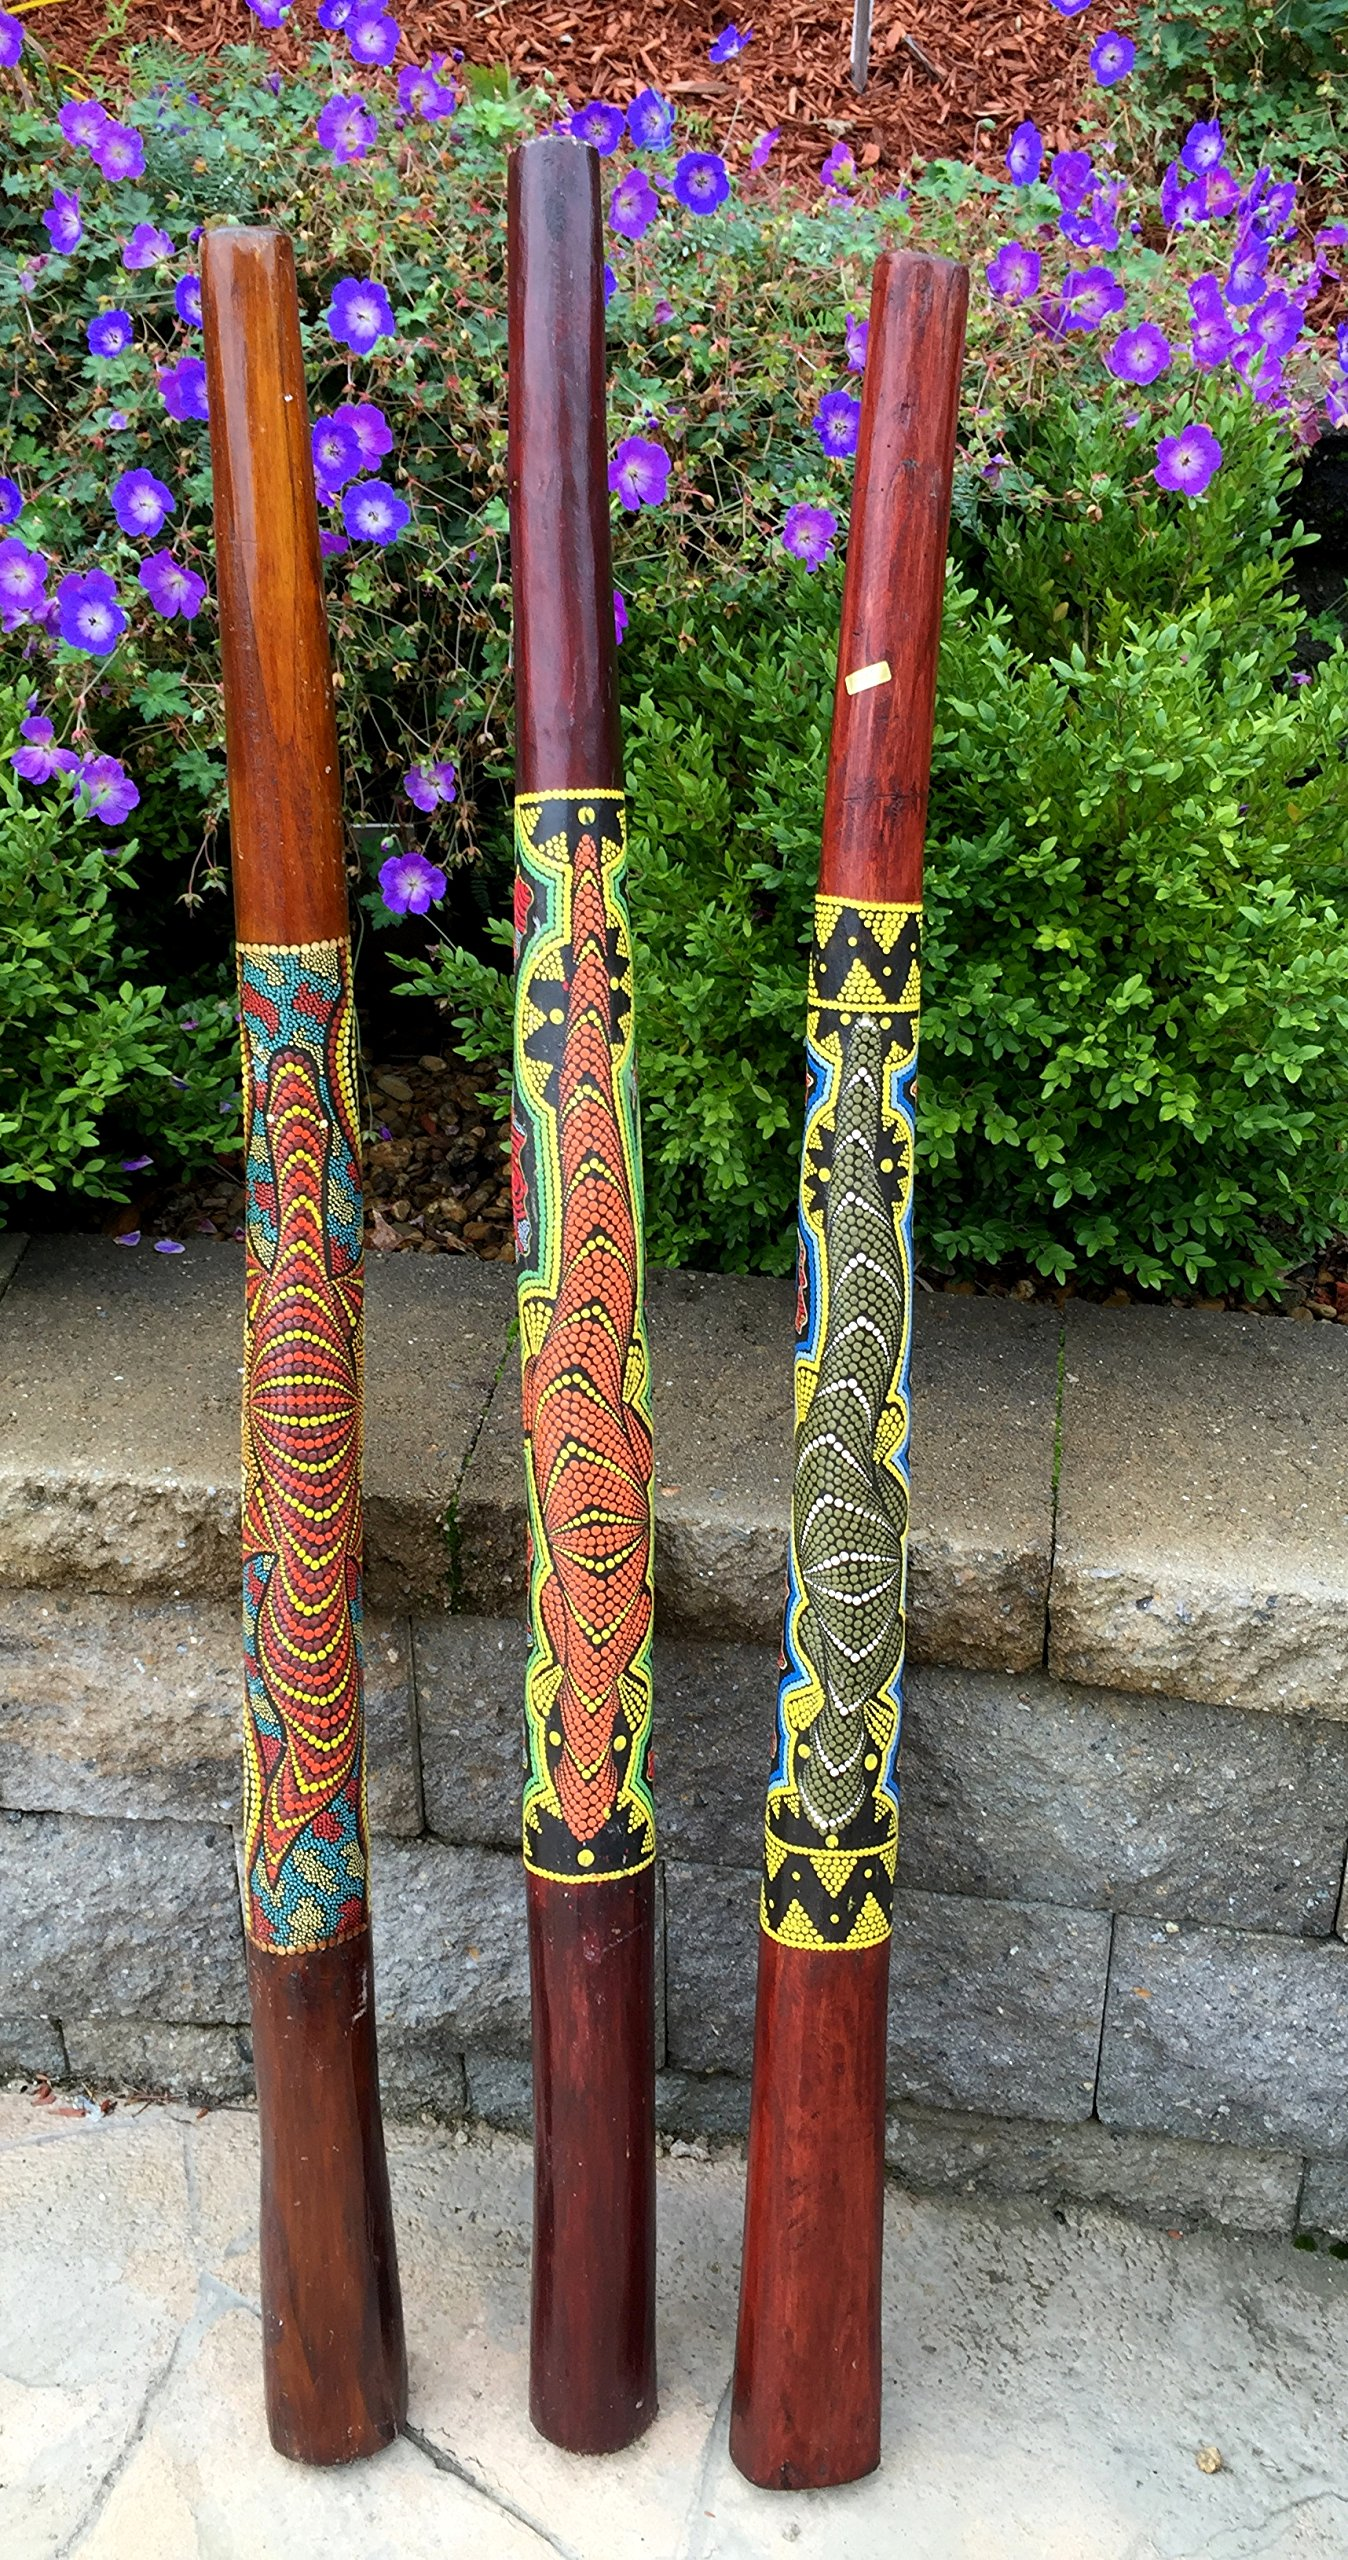 Didgeridoo Hand Painted Teak Wood- Professional Sound, XLARGE SIZE - 52'', JIVE BRAND